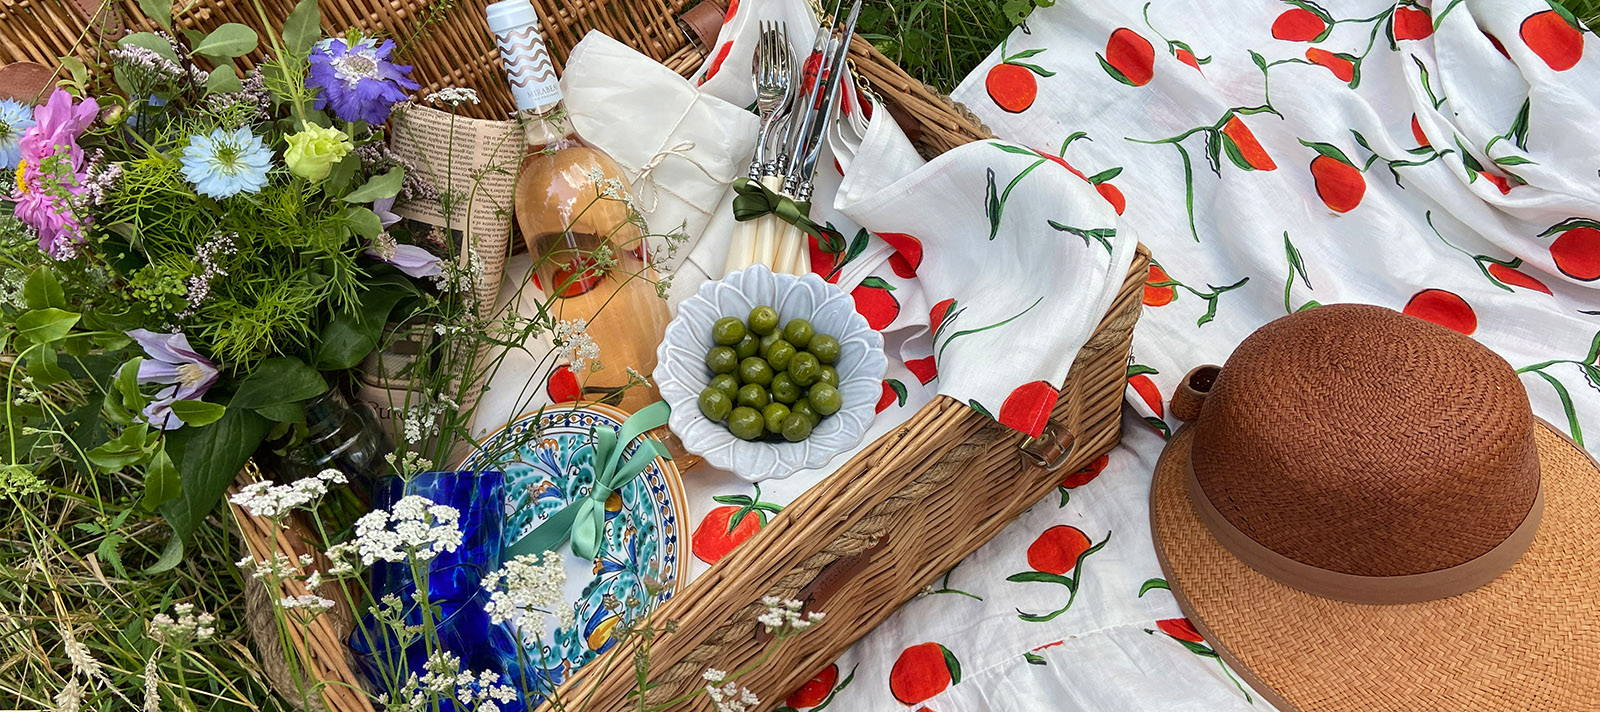 Orange linen tablecloth and napkins by YOLKE on a picnic